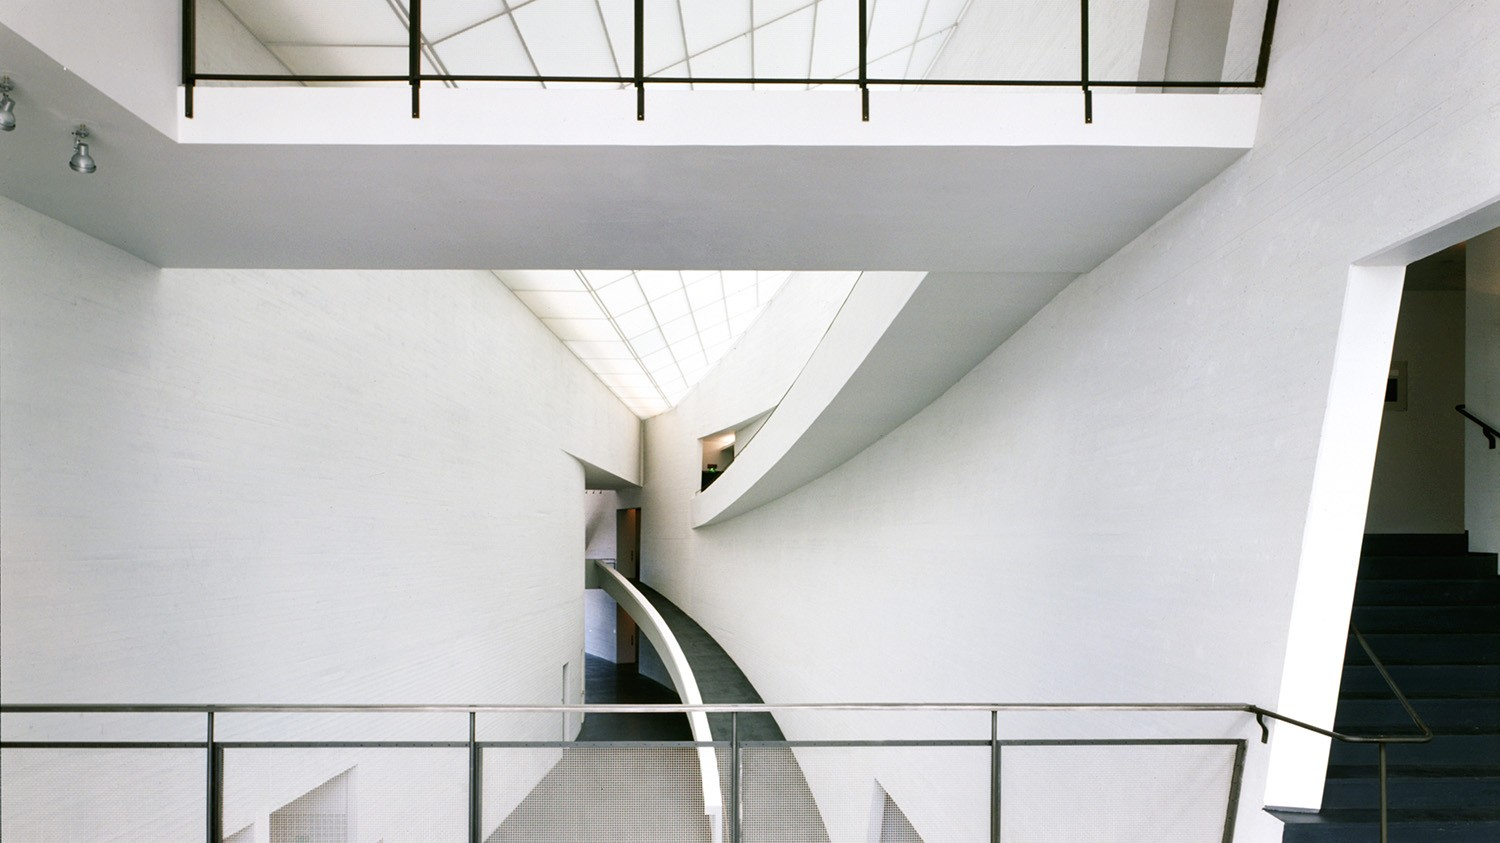 https://stevenholl.sfo2.digitaloceanspaces.com/uploads/projects/project-images/PaulWarchol_Kiasma_98-047-08B_WH.jpg